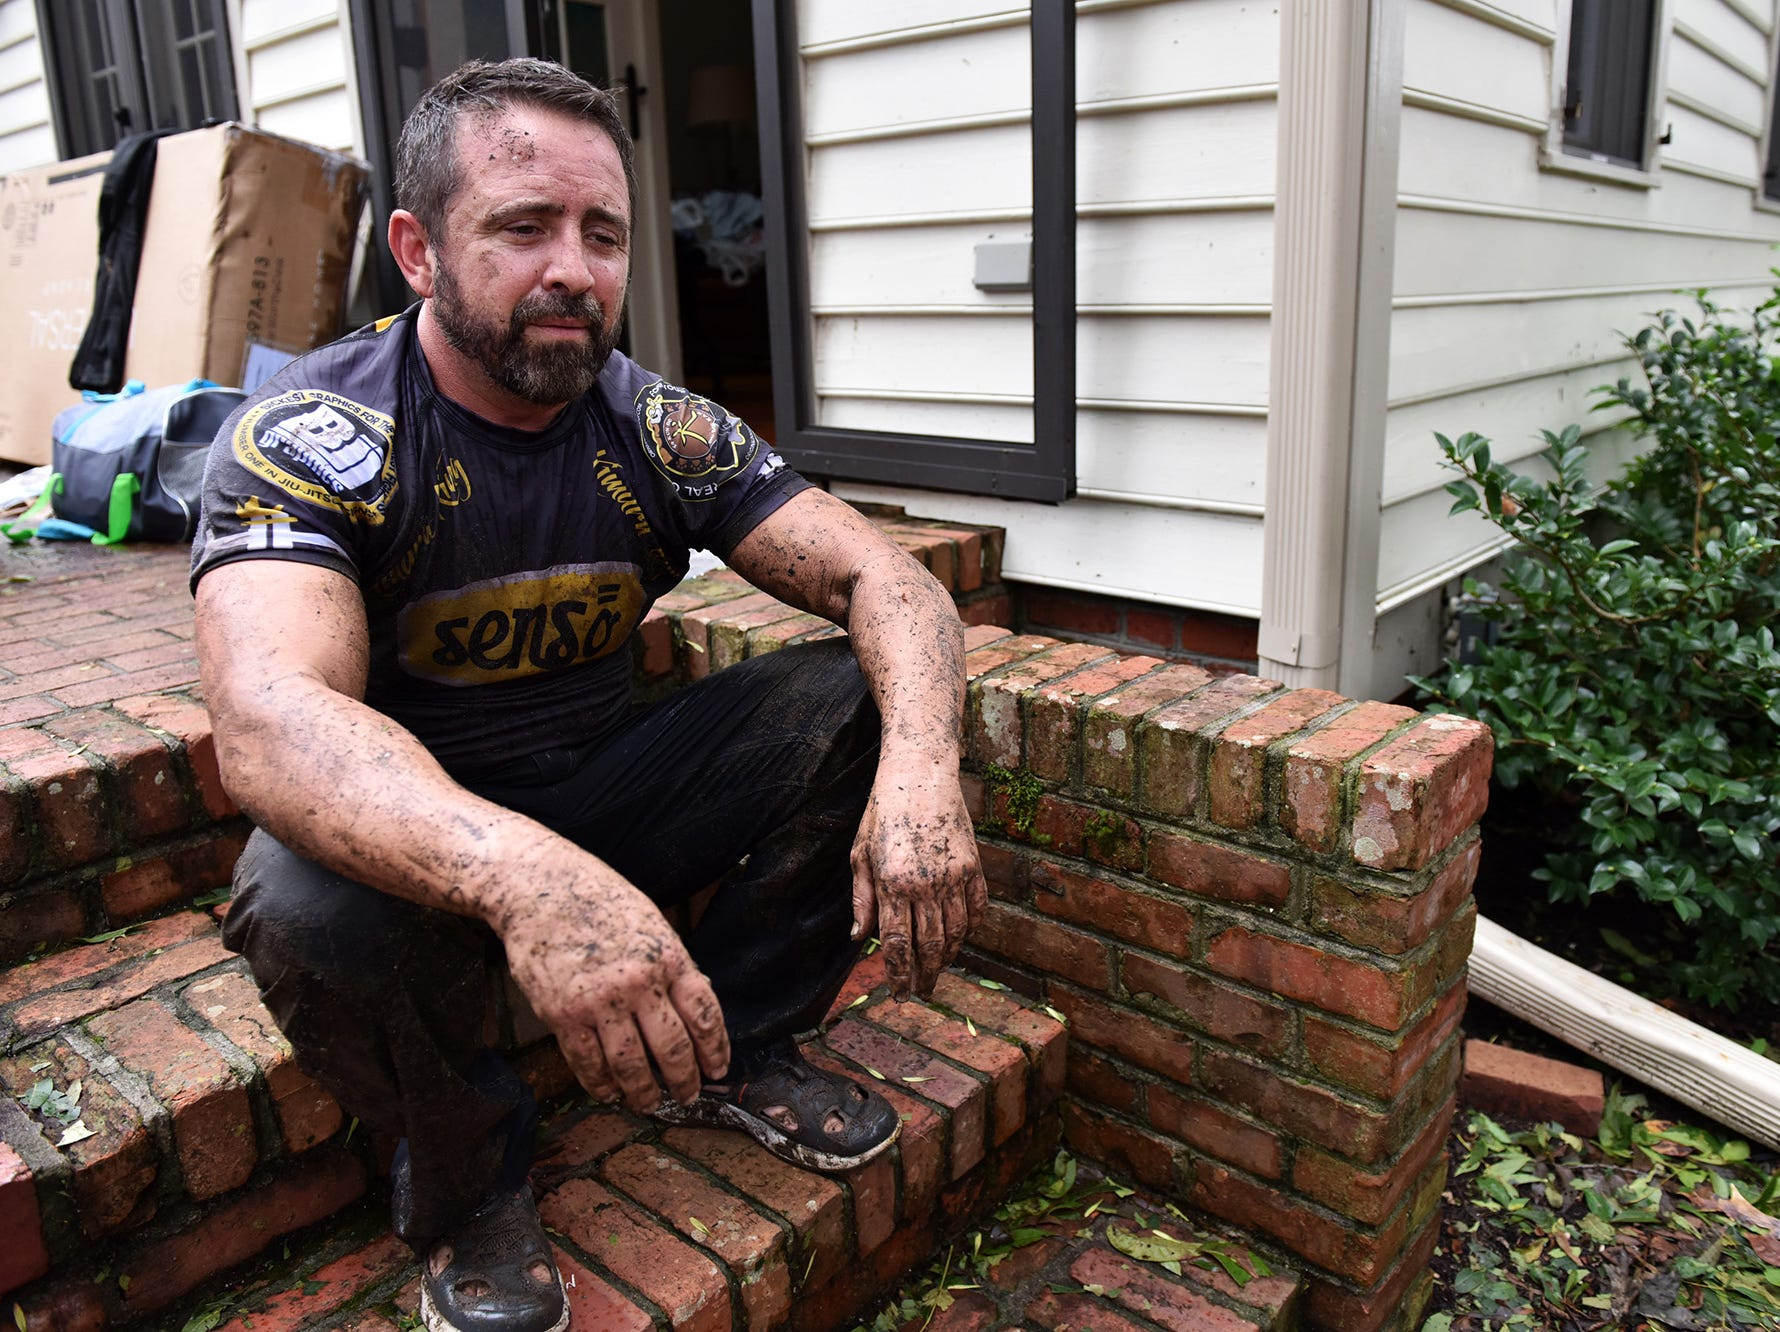 Jay Singleton 46, of New Bern N.C. takes a break after removing all the insulation from the basement in his home that was built in 1810 in the historic neighborhood of New Bern, N.C. on Sunday afternoon on September 16, 2018. Flood waters filled his basement and brought in one foot of water into the first floor. Hurricane Florence brought heavy rain and winds causing flooding in North and South Carolinas.